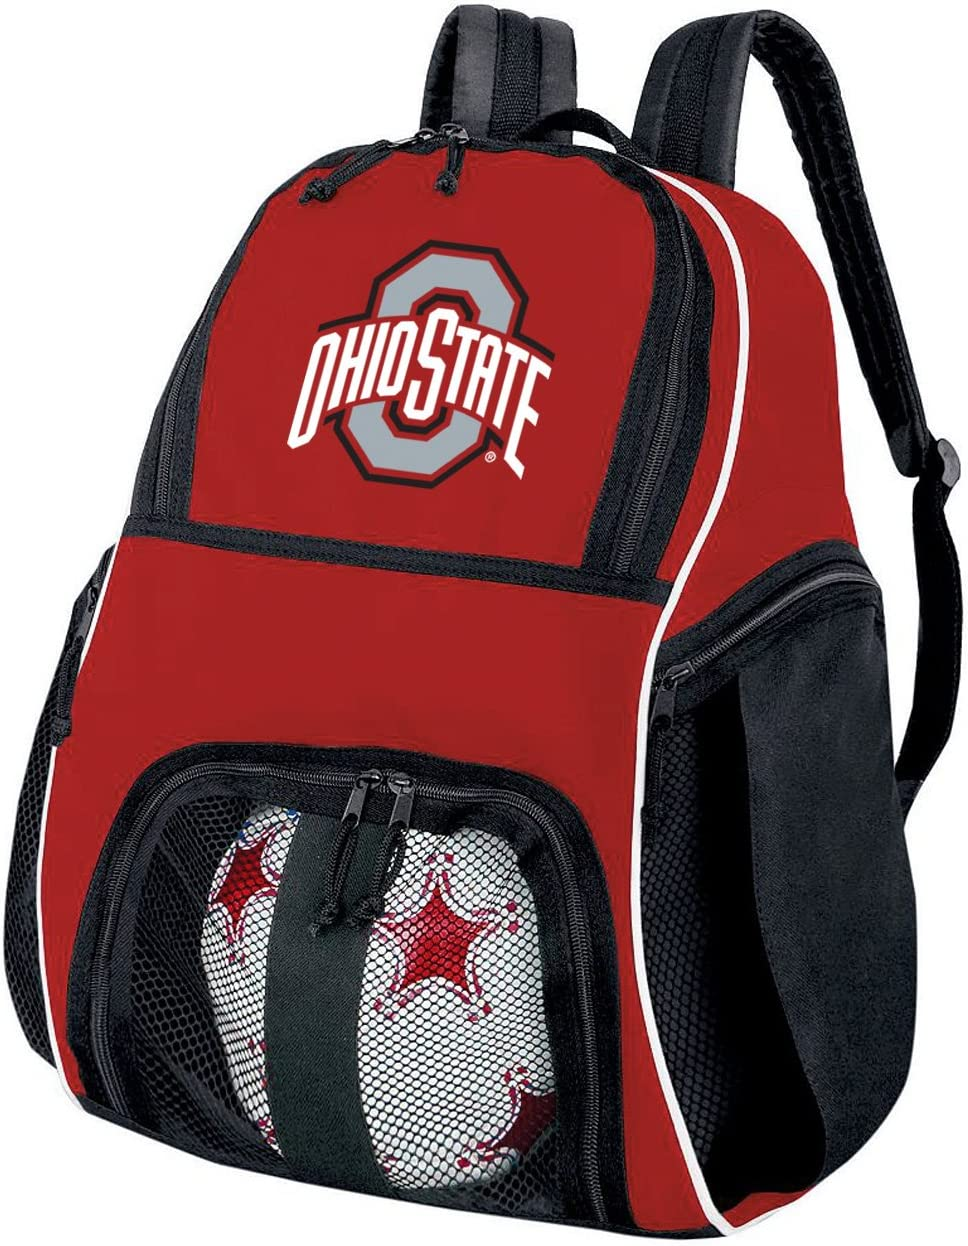 Ohio State University Soccer Ball Brand Bombing new work Cheap Sale Venue or Volle OSU Backpack Buckeyes